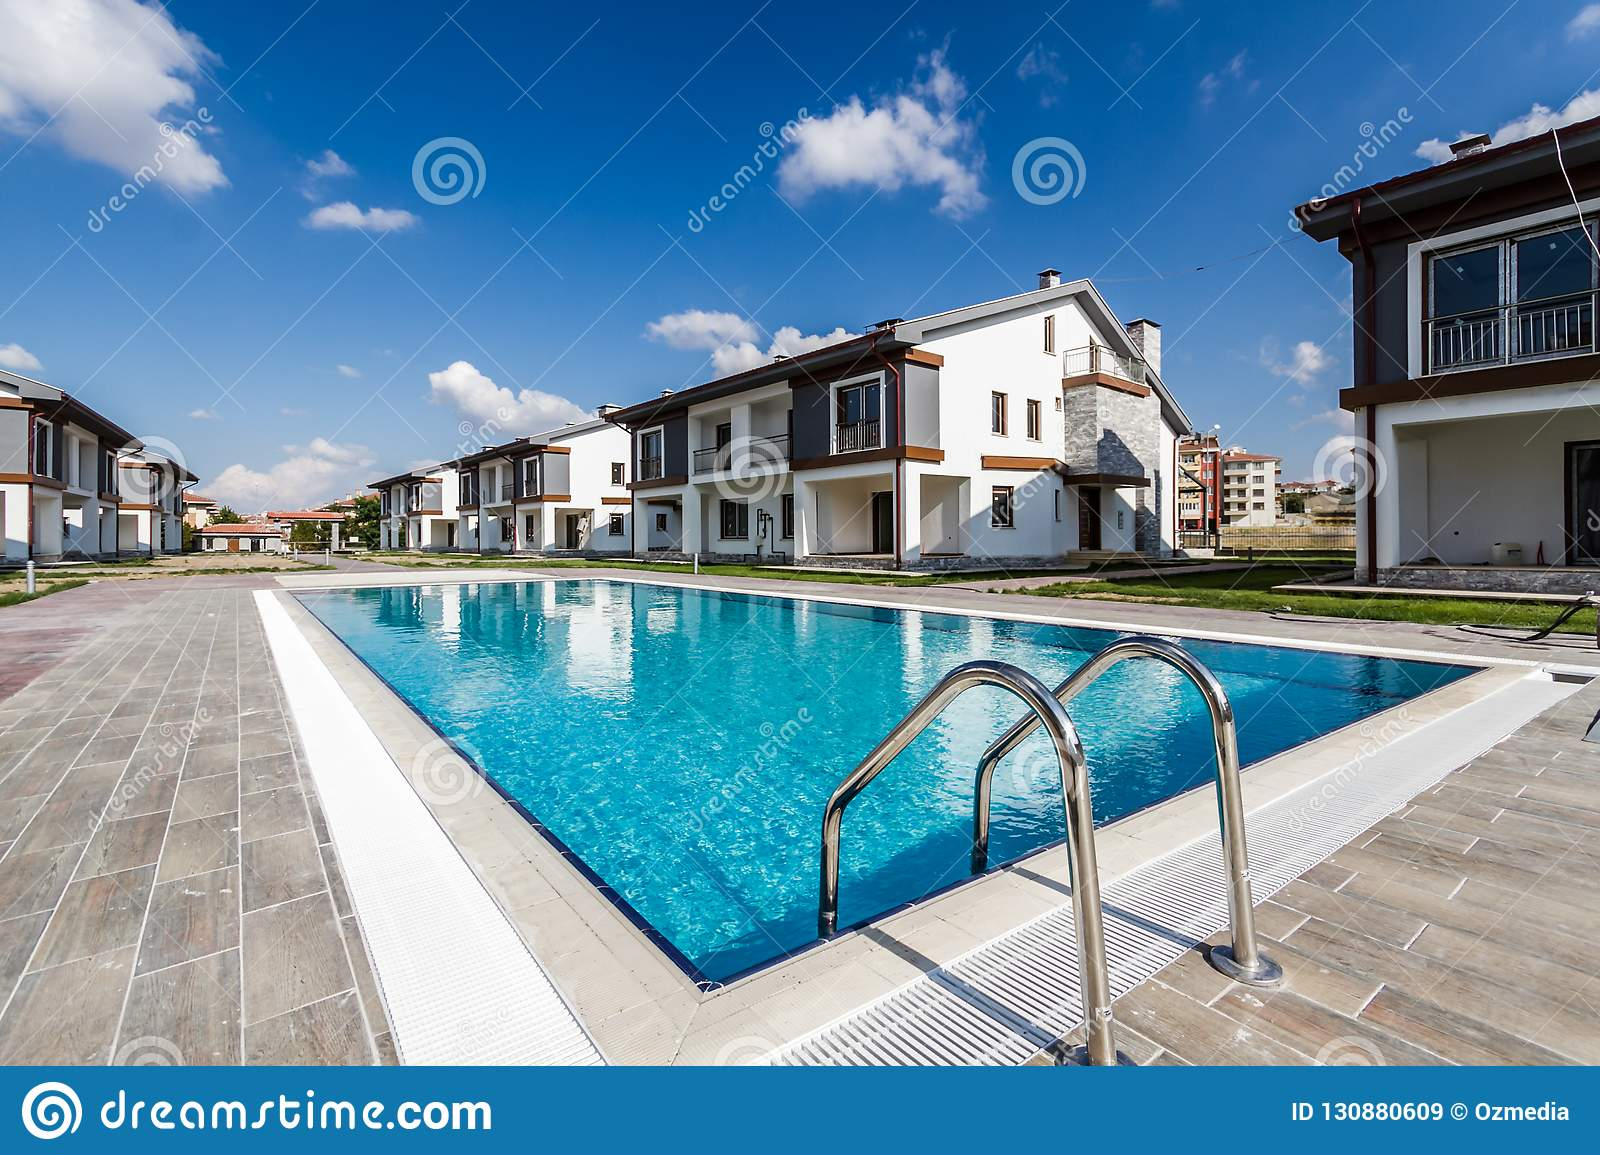 7a2e2edcddce Communal swimming pool for residents of a newly built apartments site